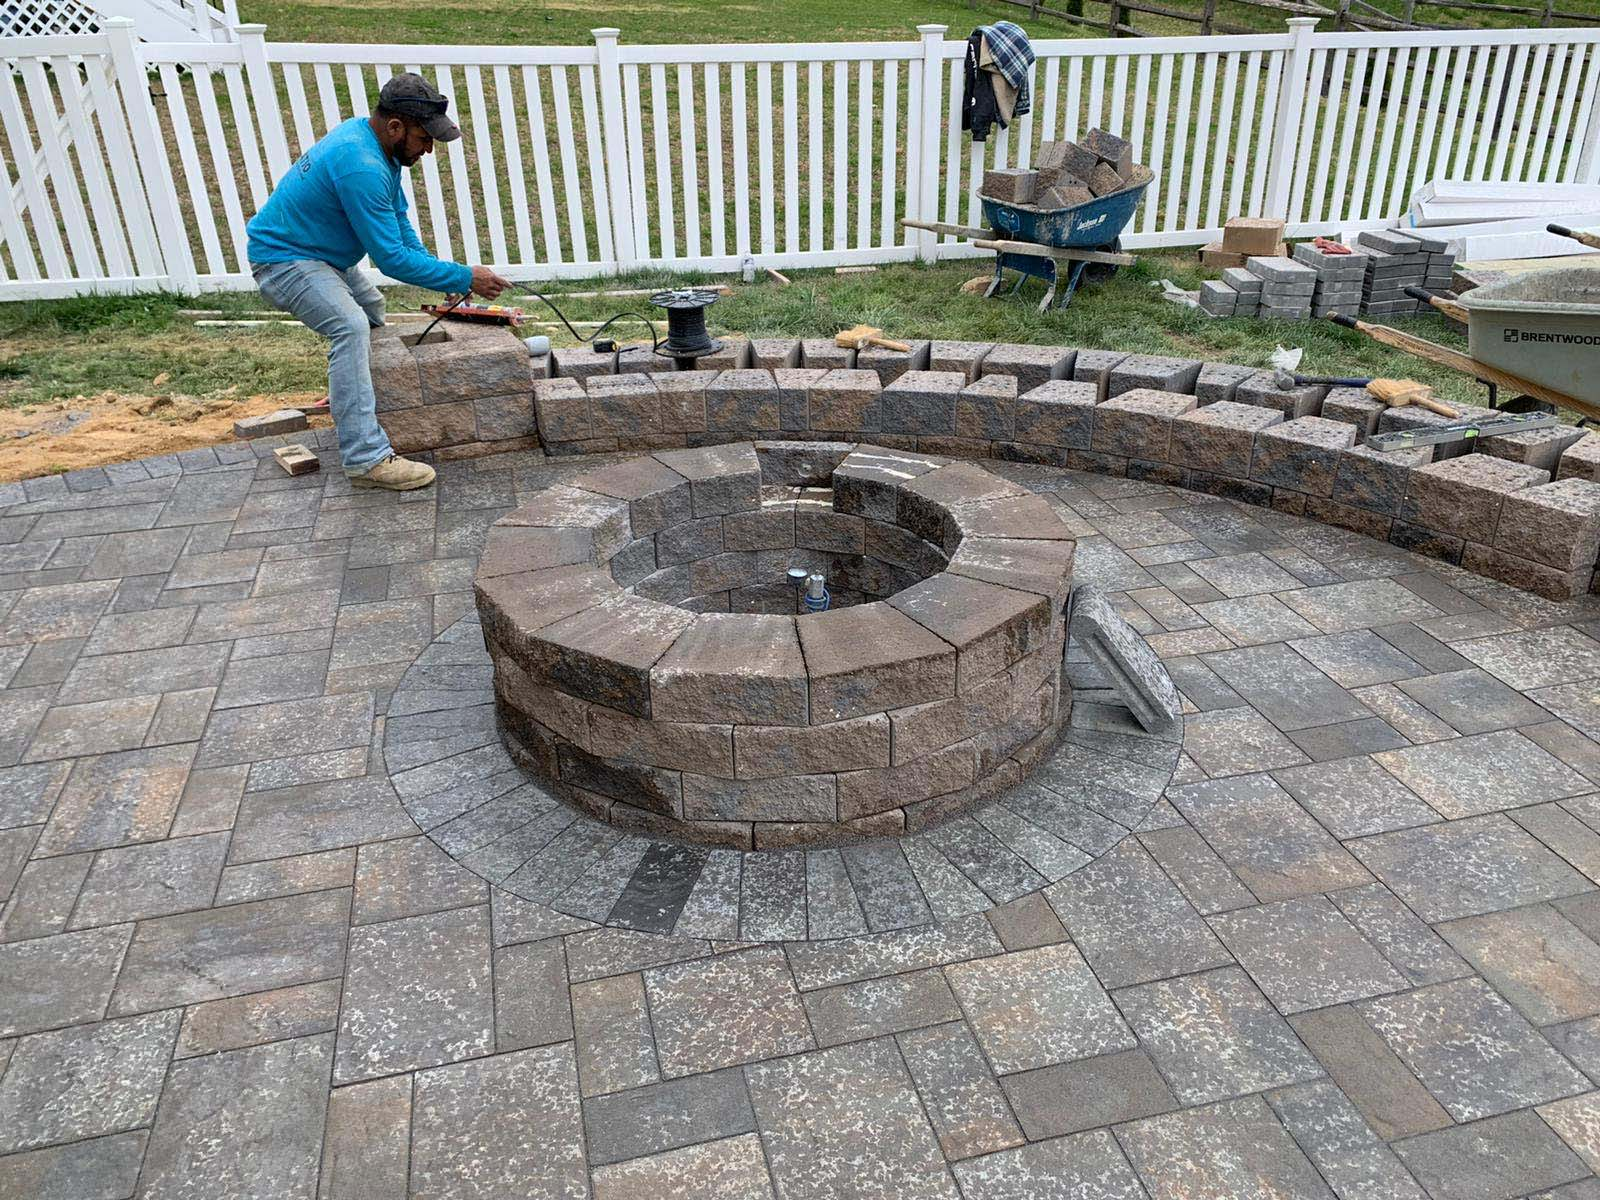 Fire Pit, patio and wall under construction